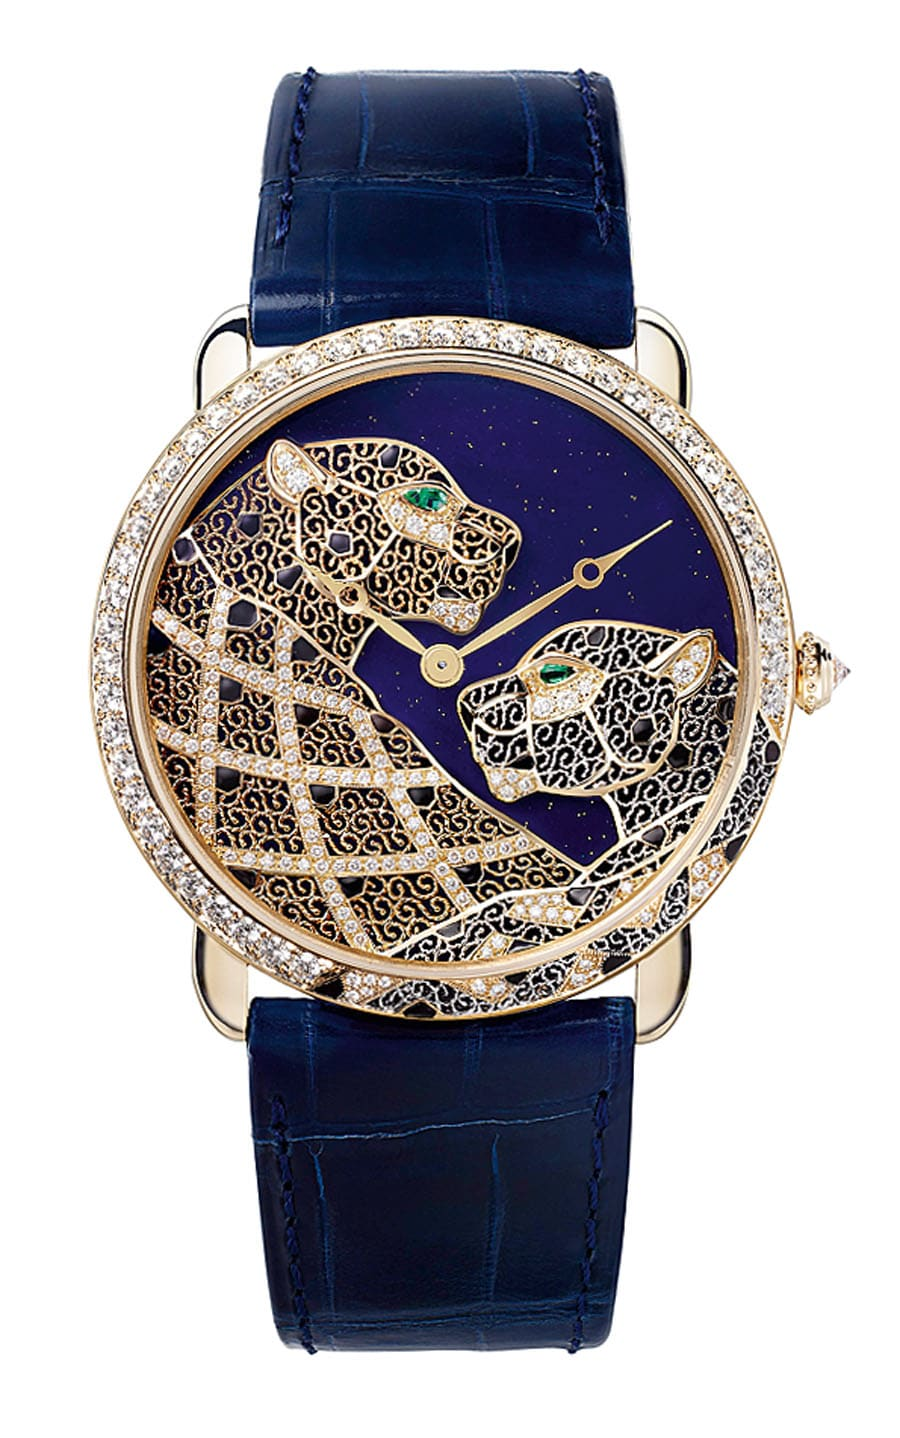 Cartier: Ronde Louis Cartier Filigrane